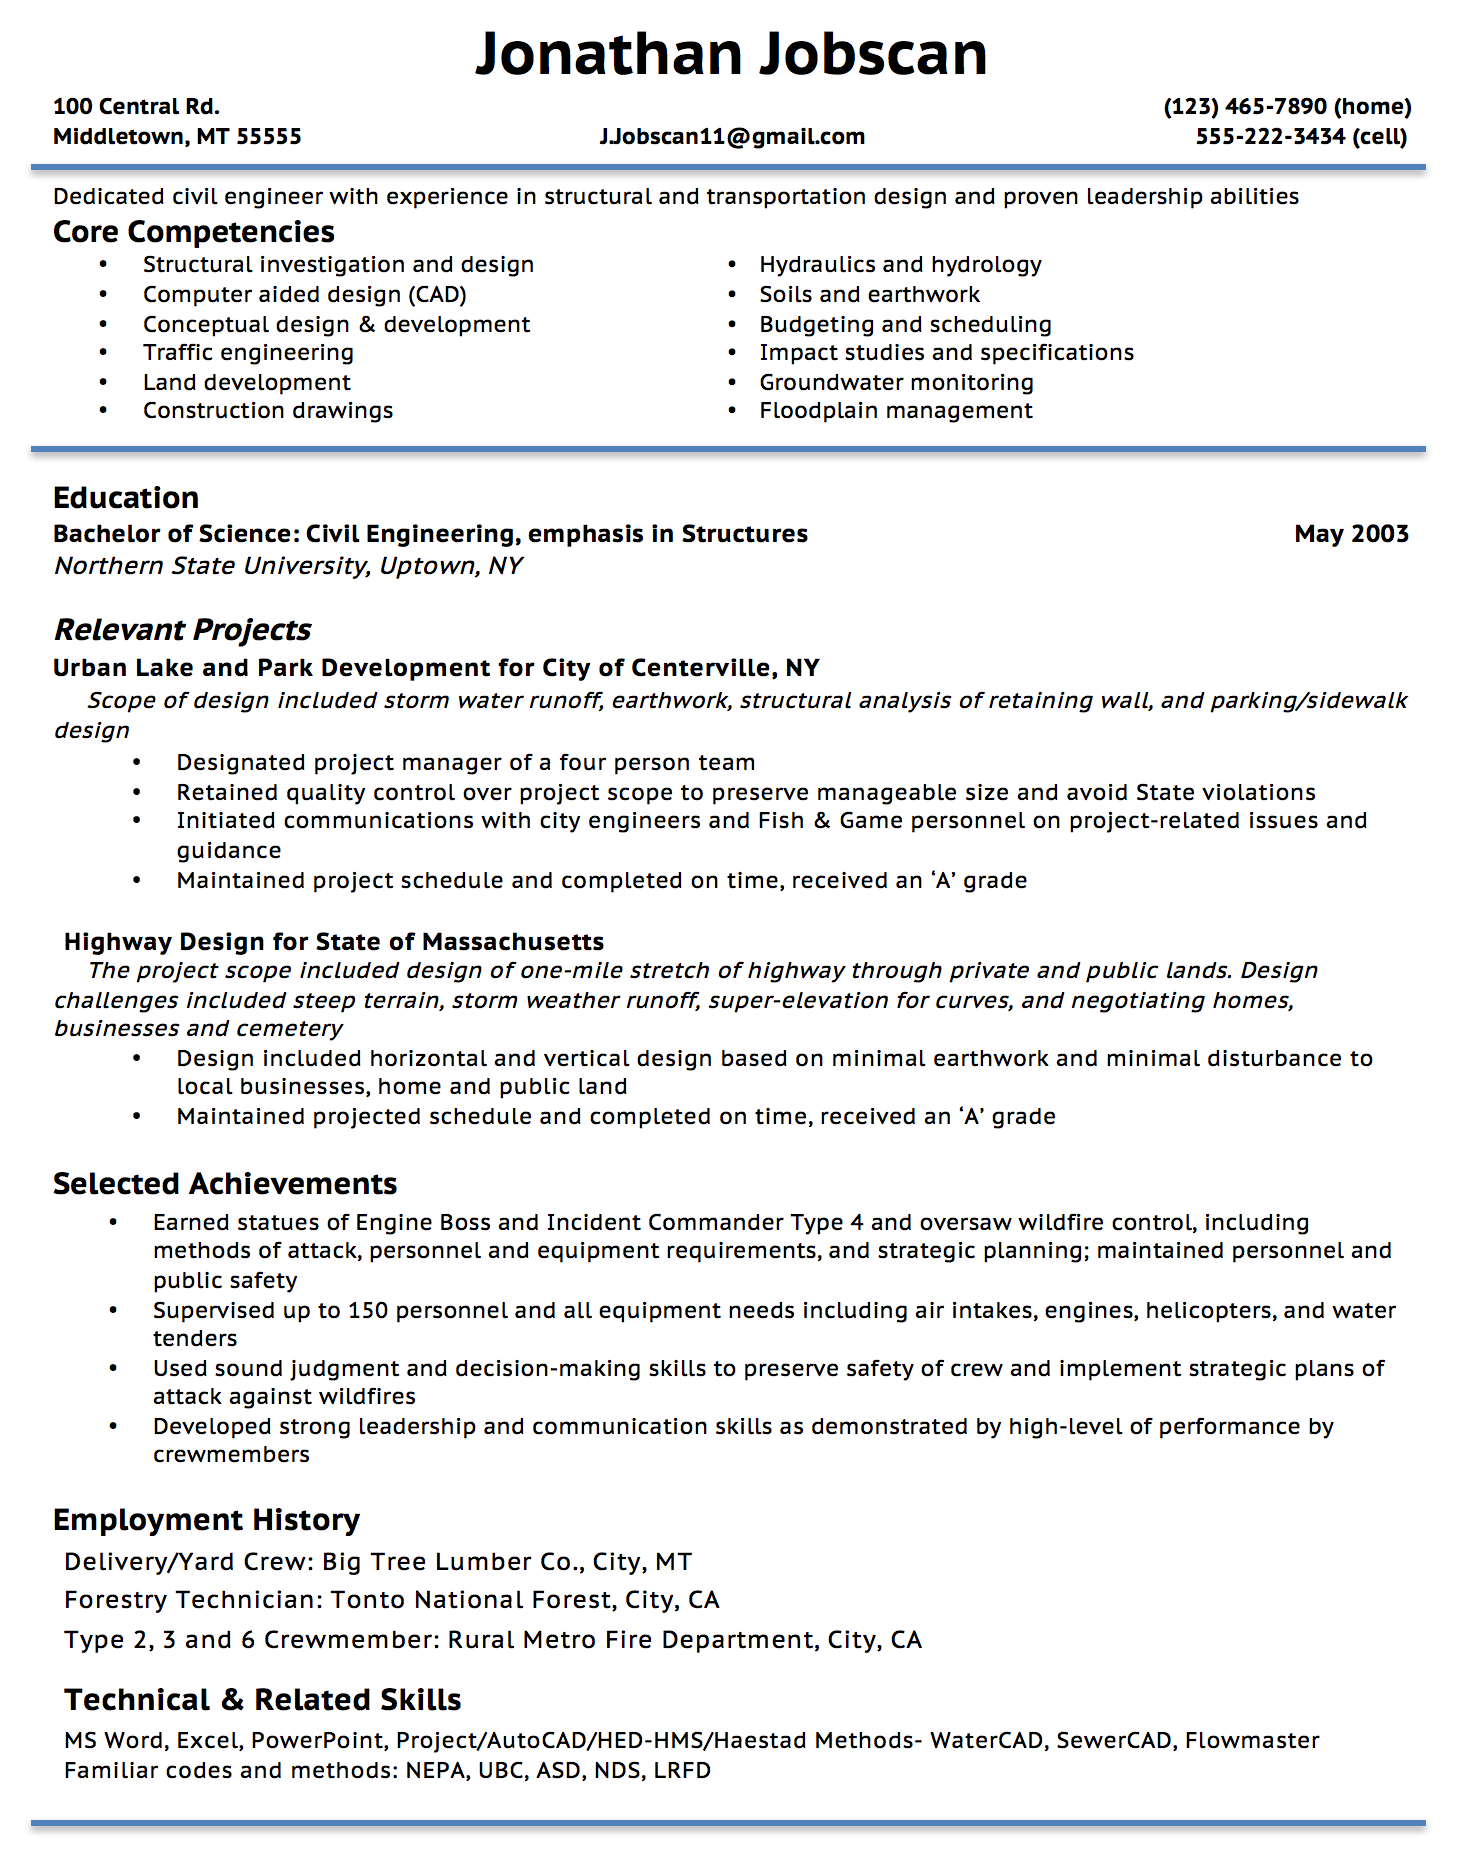 Opposenewapstandardsus  Winning Resume Writing Guide  Jobscan With Marvelous Example Of A Functional Resume Format With Amusing Customer Service Job Description For Resume Also Student Resume Templates In Addition Build A Resume Online Free And Sample Cna Resume As Well As Resume Language Skills Additionally How Long Should My Resume Be From Jobscanco With Opposenewapstandardsus  Marvelous Resume Writing Guide  Jobscan With Amusing Example Of A Functional Resume Format And Winning Customer Service Job Description For Resume Also Student Resume Templates In Addition Build A Resume Online Free From Jobscanco